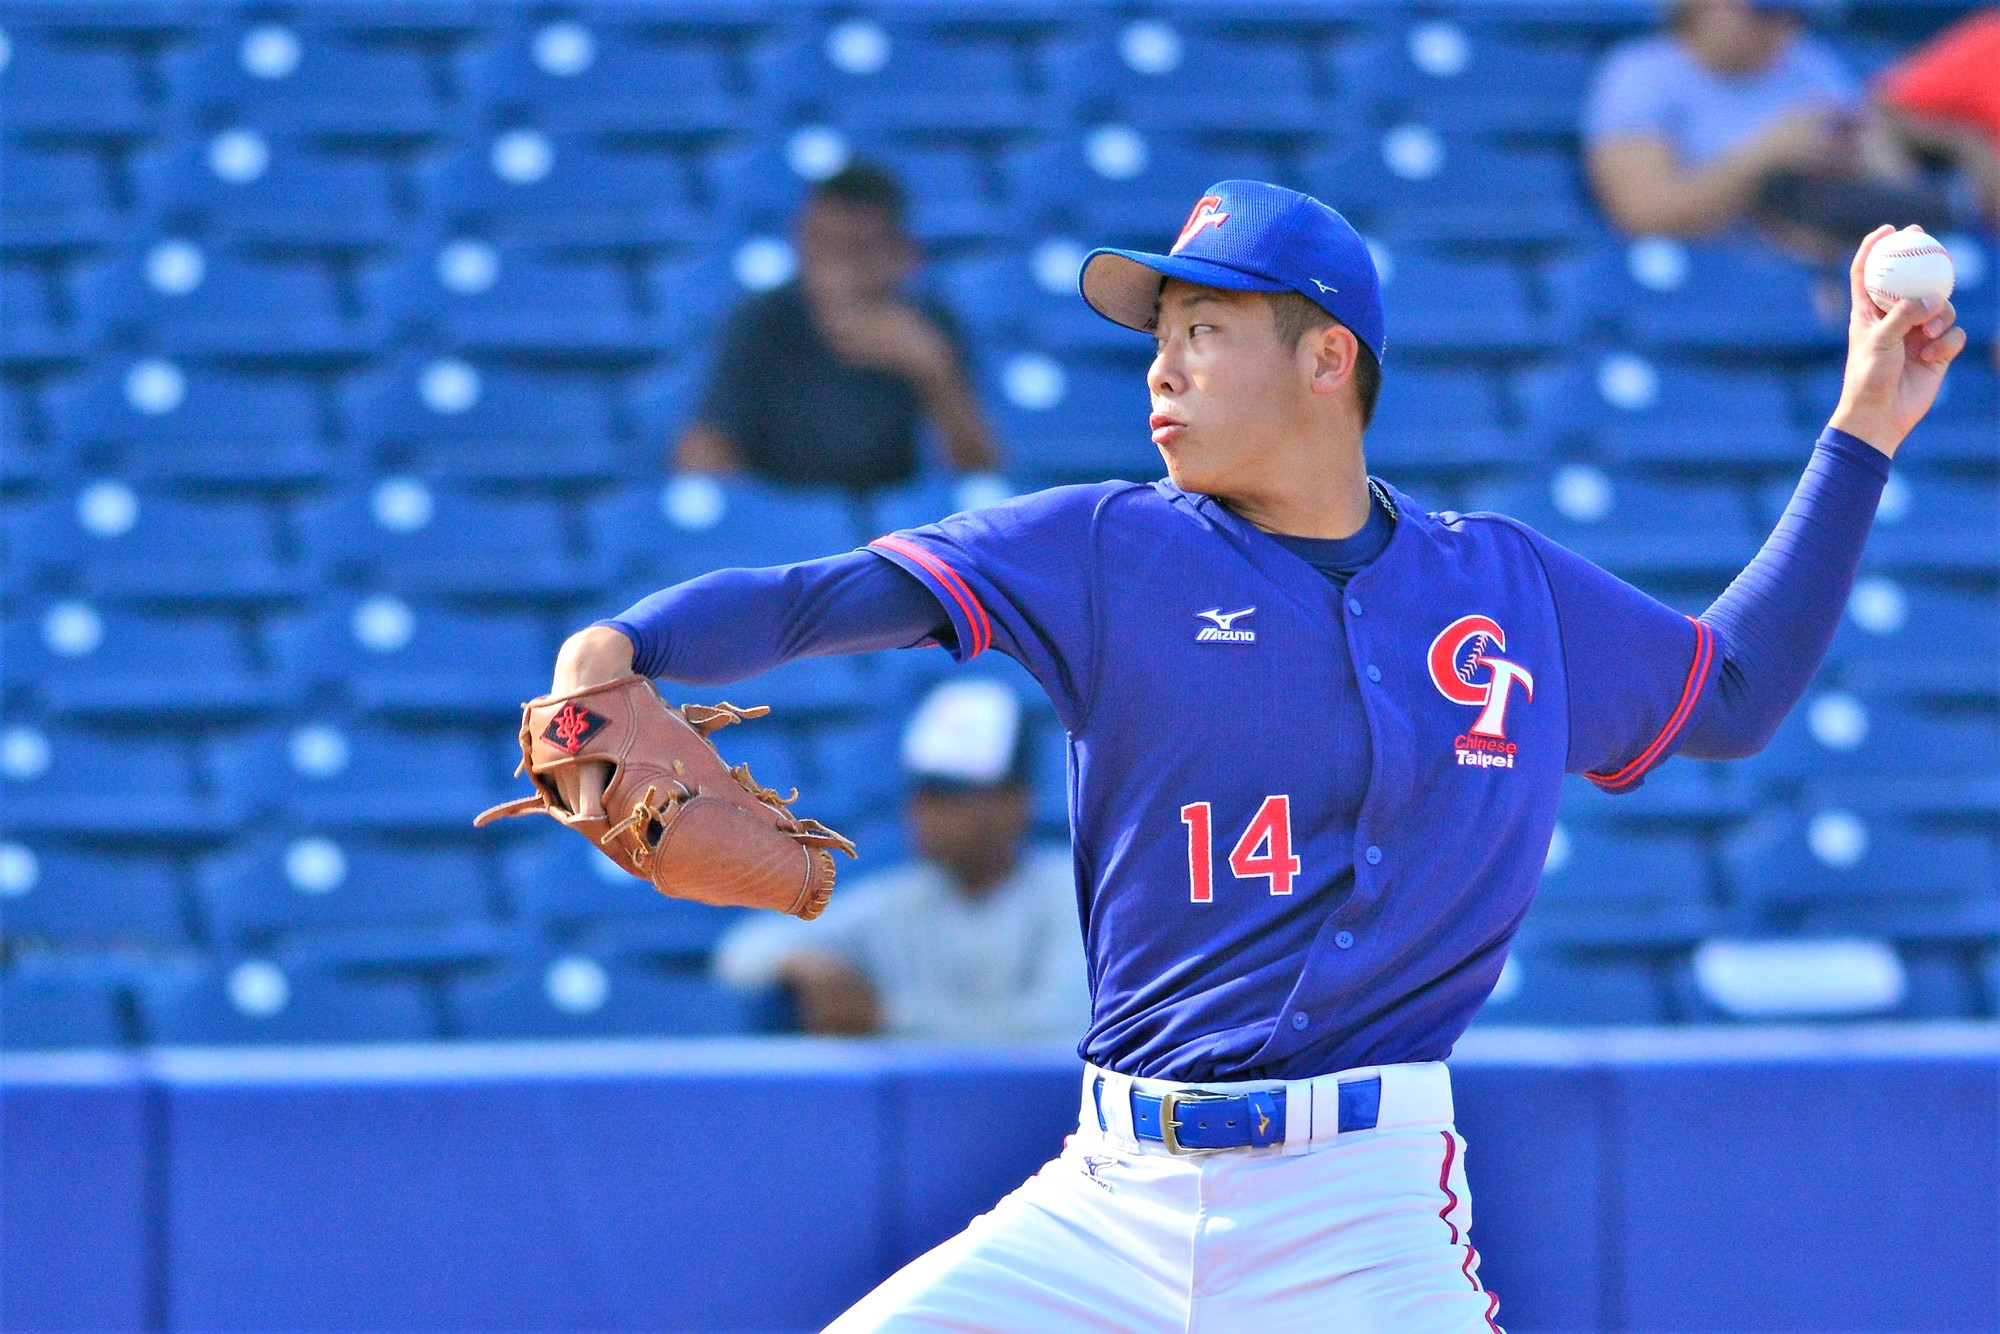 Wei Shuo Cheng dominated Venezuela line up for six innings